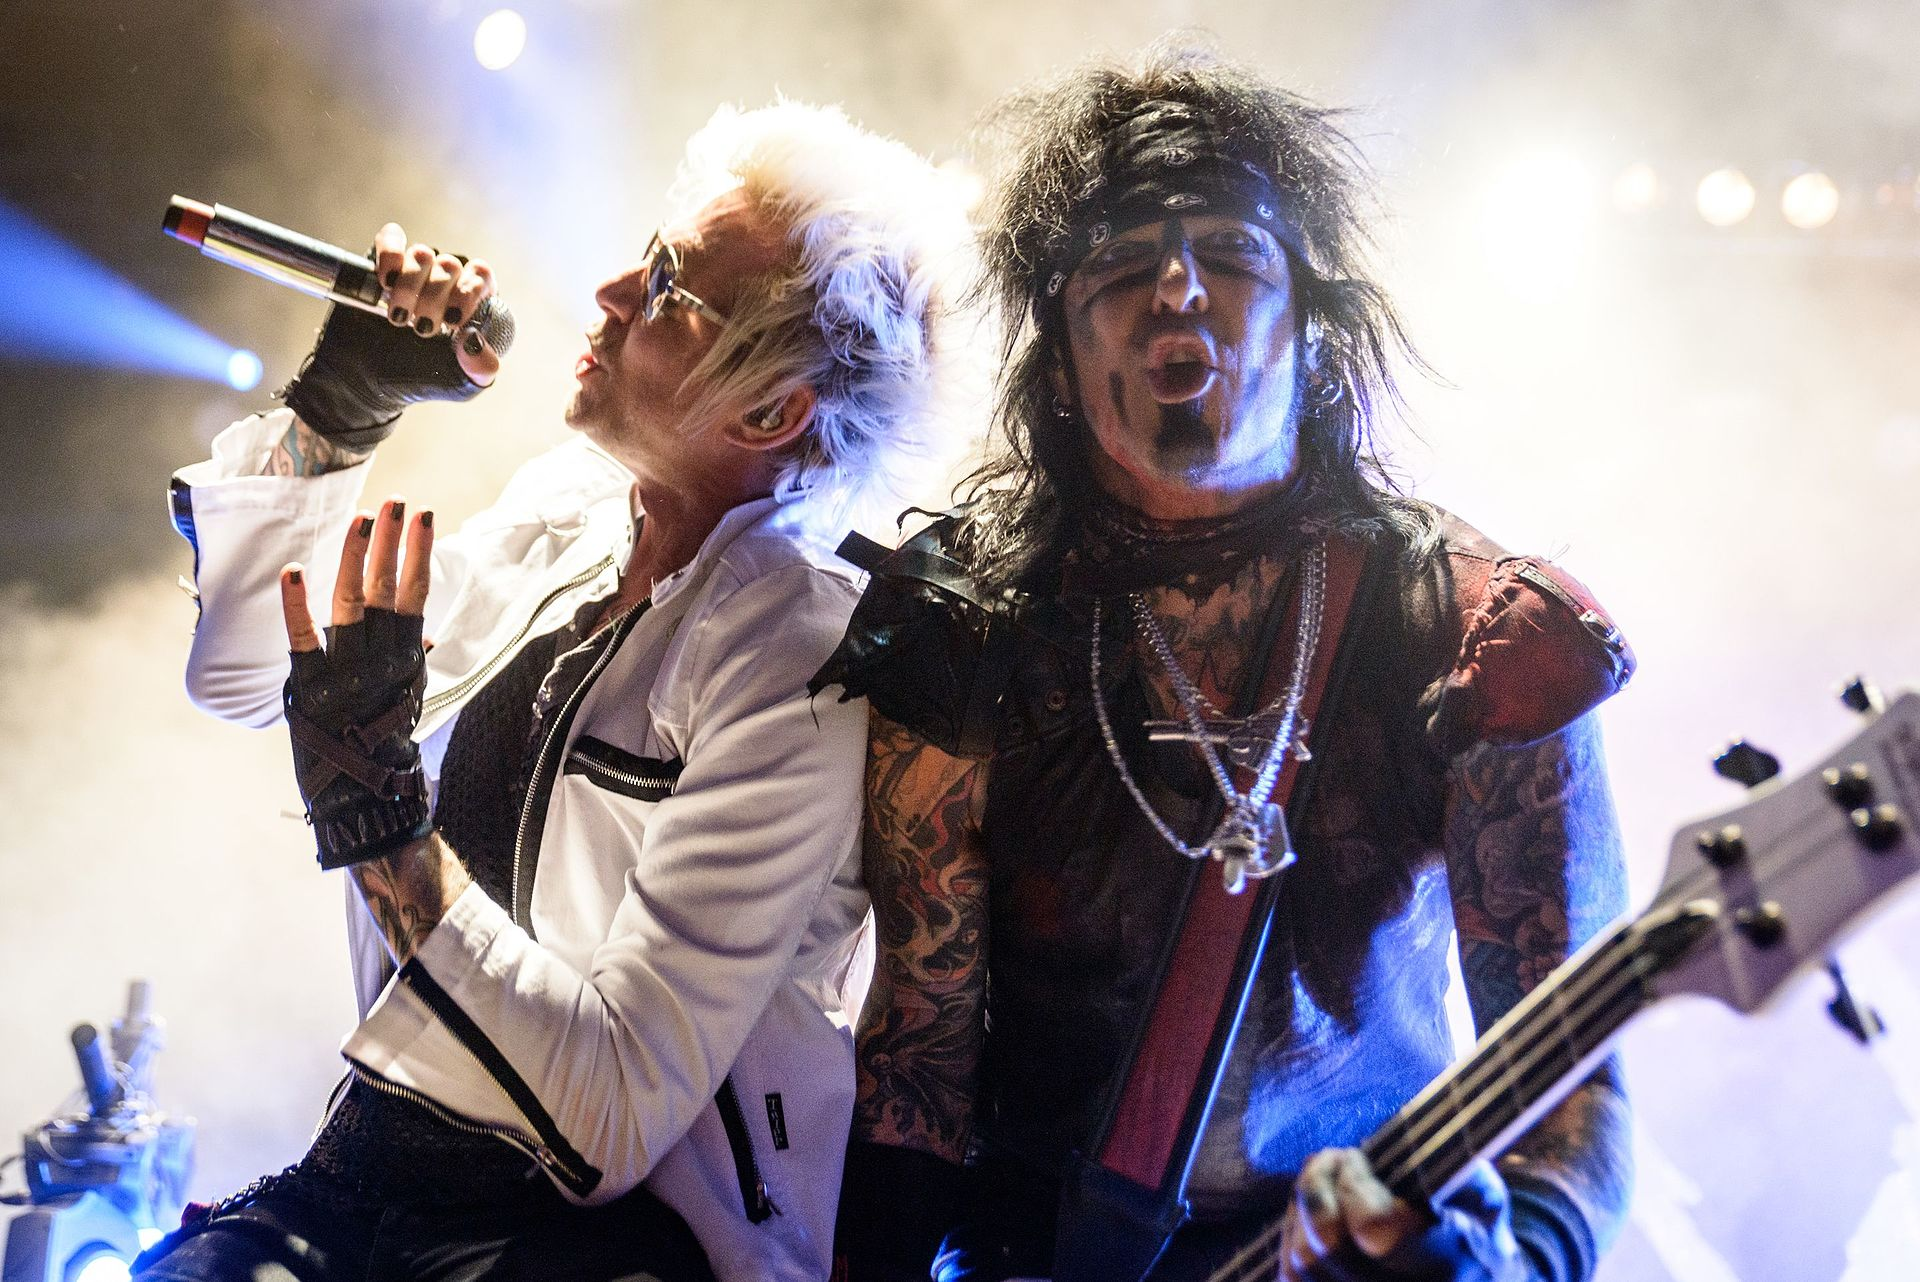 Photo Sixx:AM